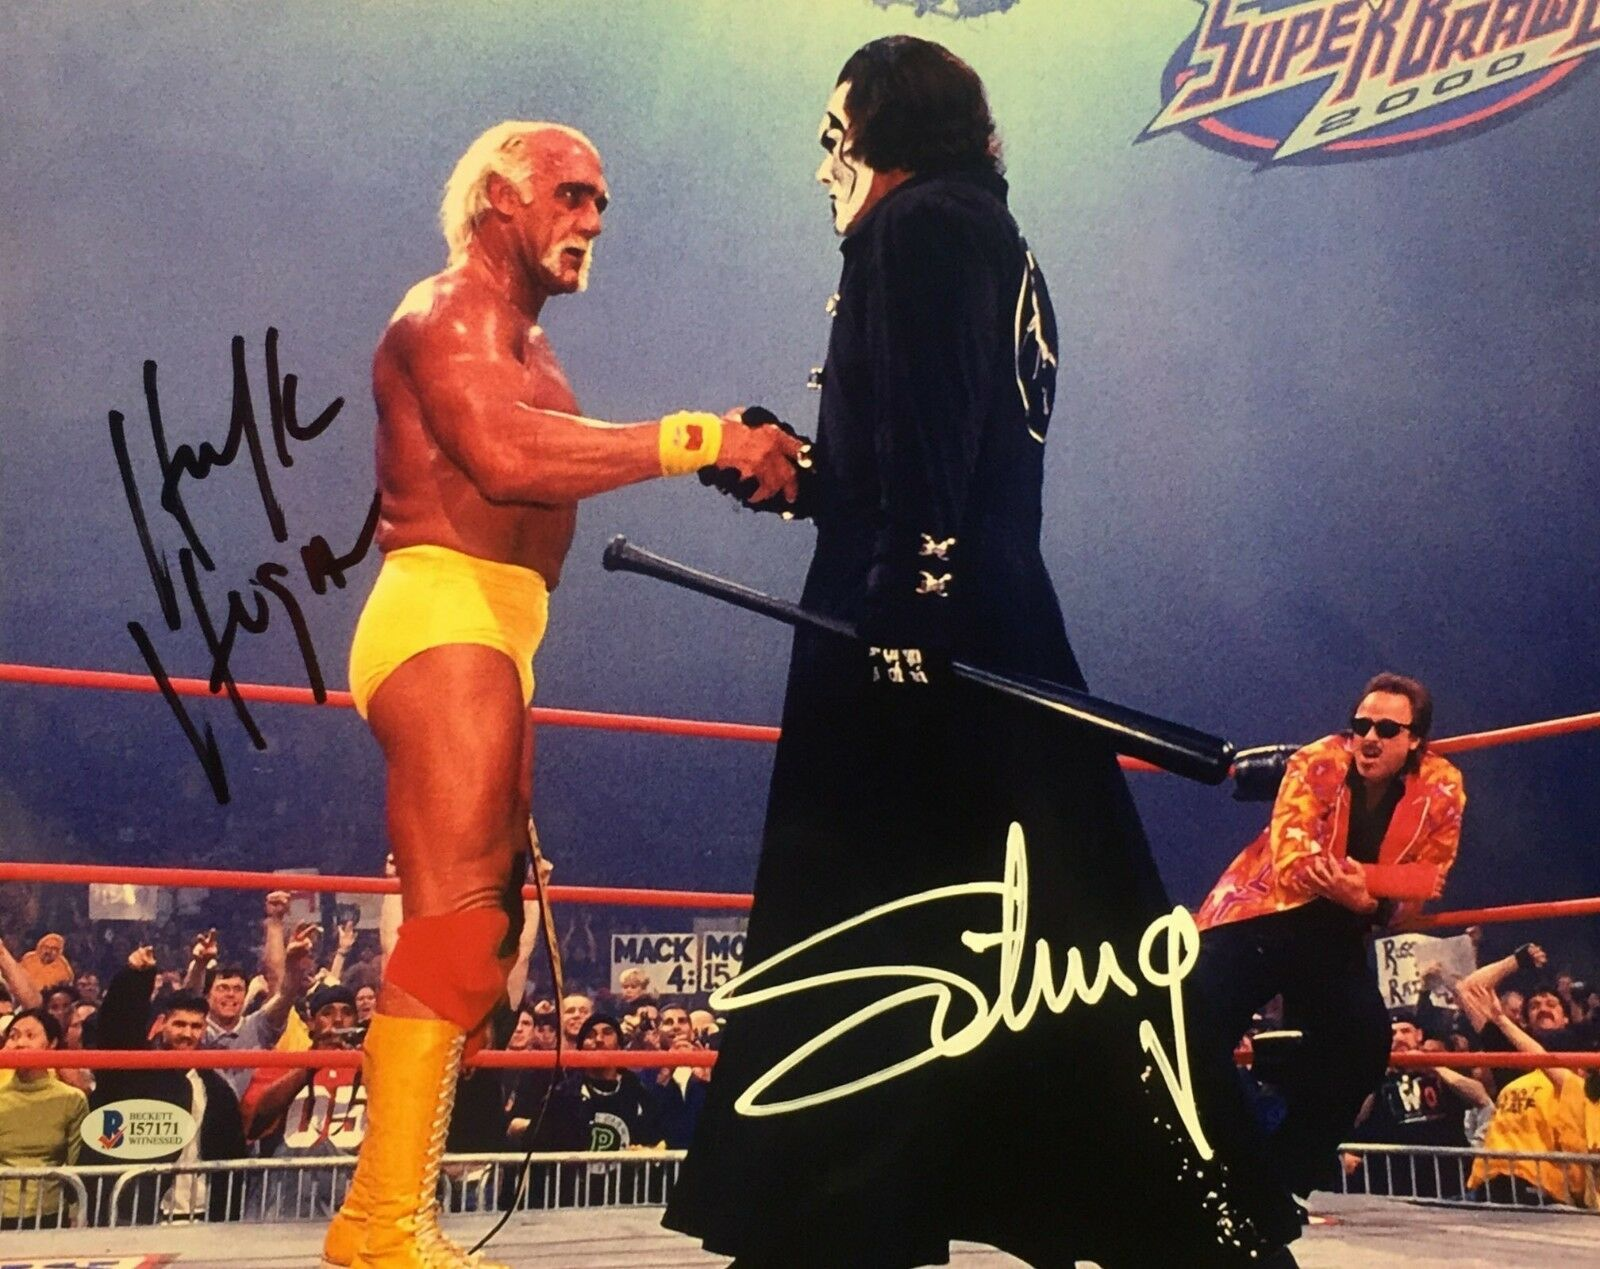 Hulk Hogan & Sting Signed 11x14 Photo *WCW *NwO Wrestling Beckett I57171